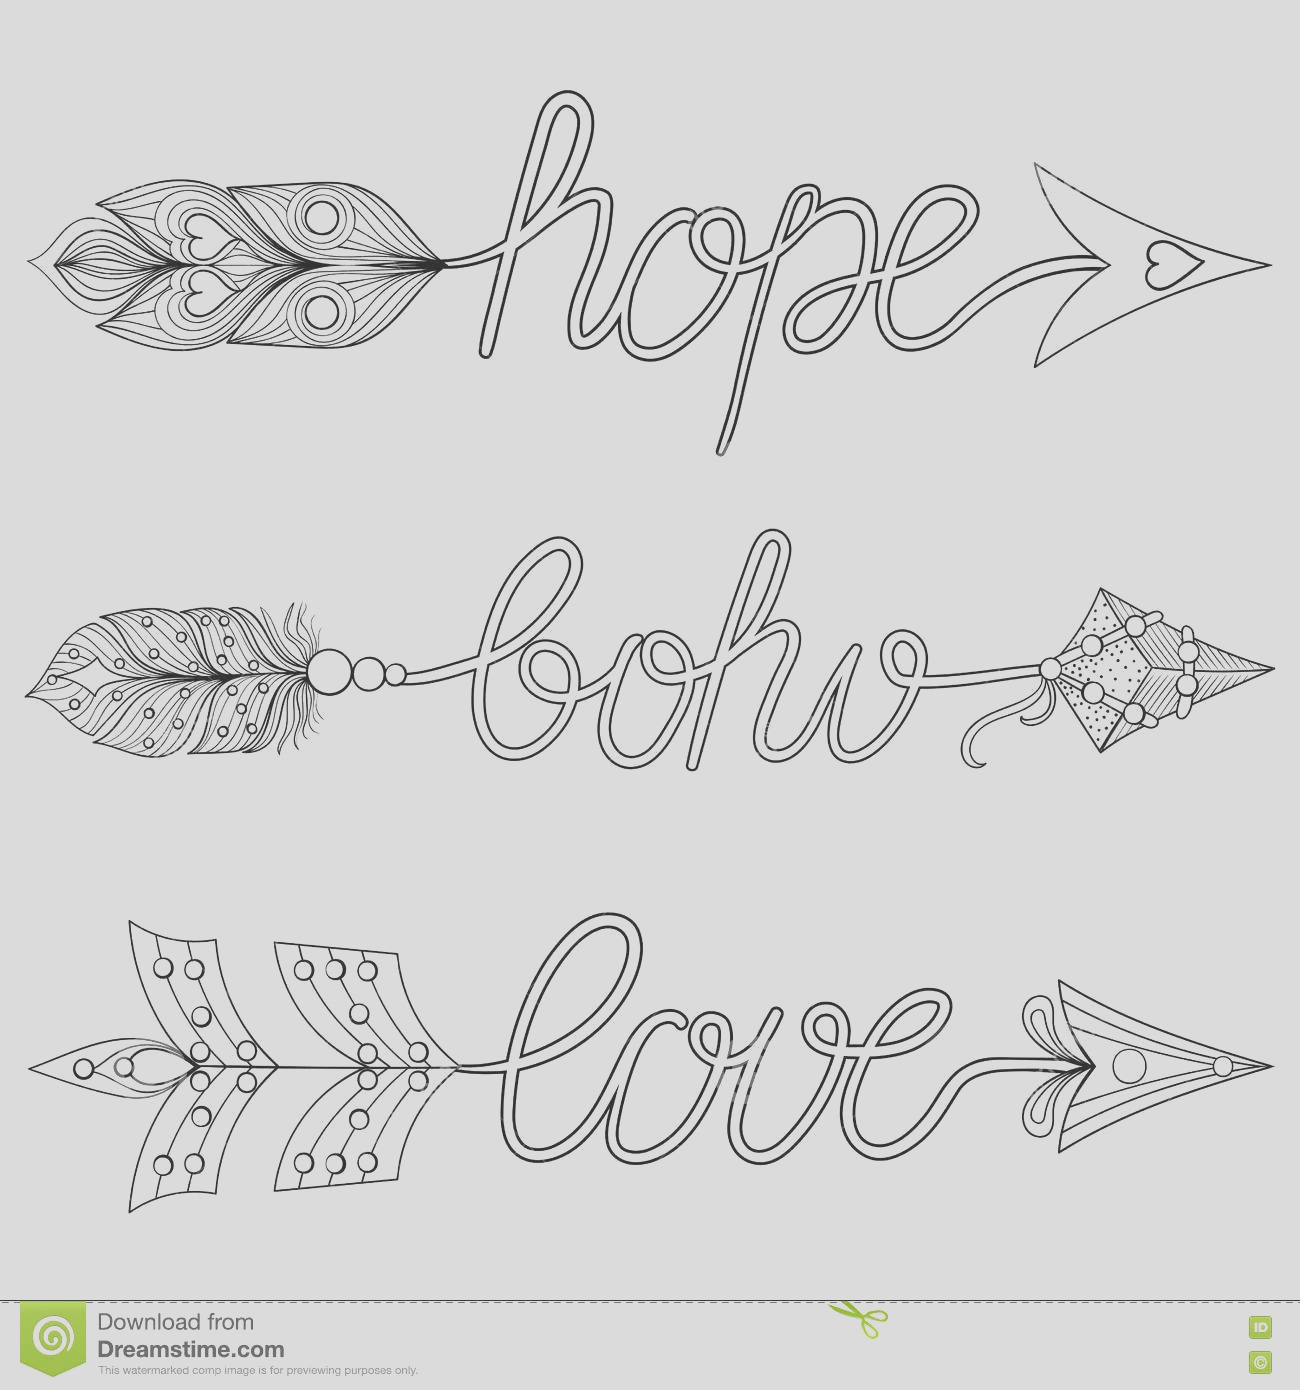 stock illustration bohemian arrows signs boho love hope feathers decorativ decorative adult coloring pages art therapy ethnic patterned t image